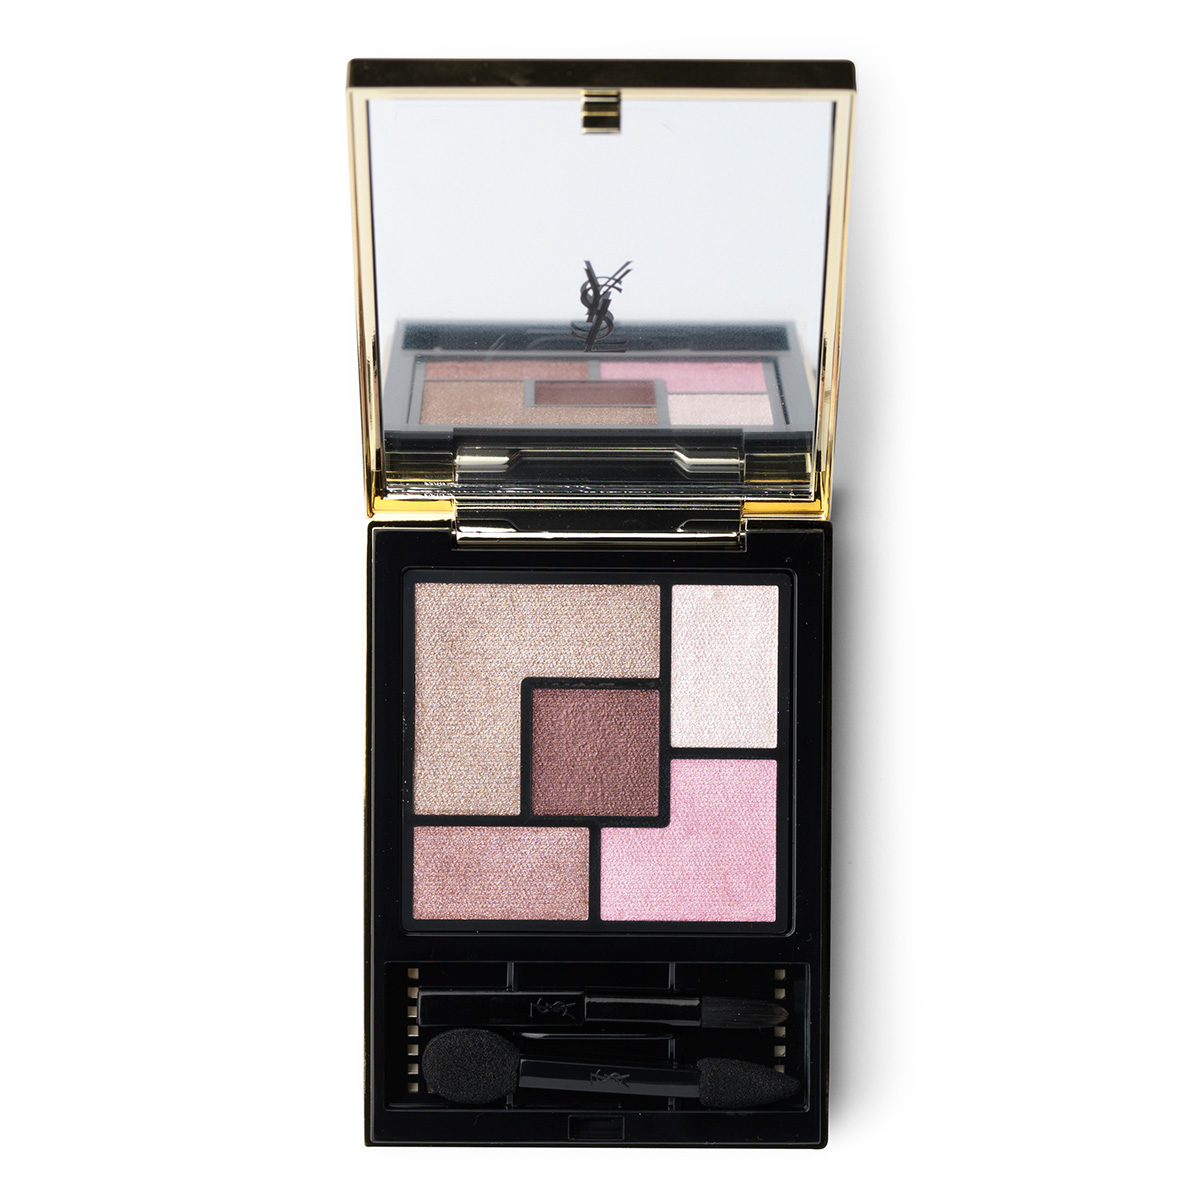 Yves Saint Laurent Couture Palette 07 Parisienne